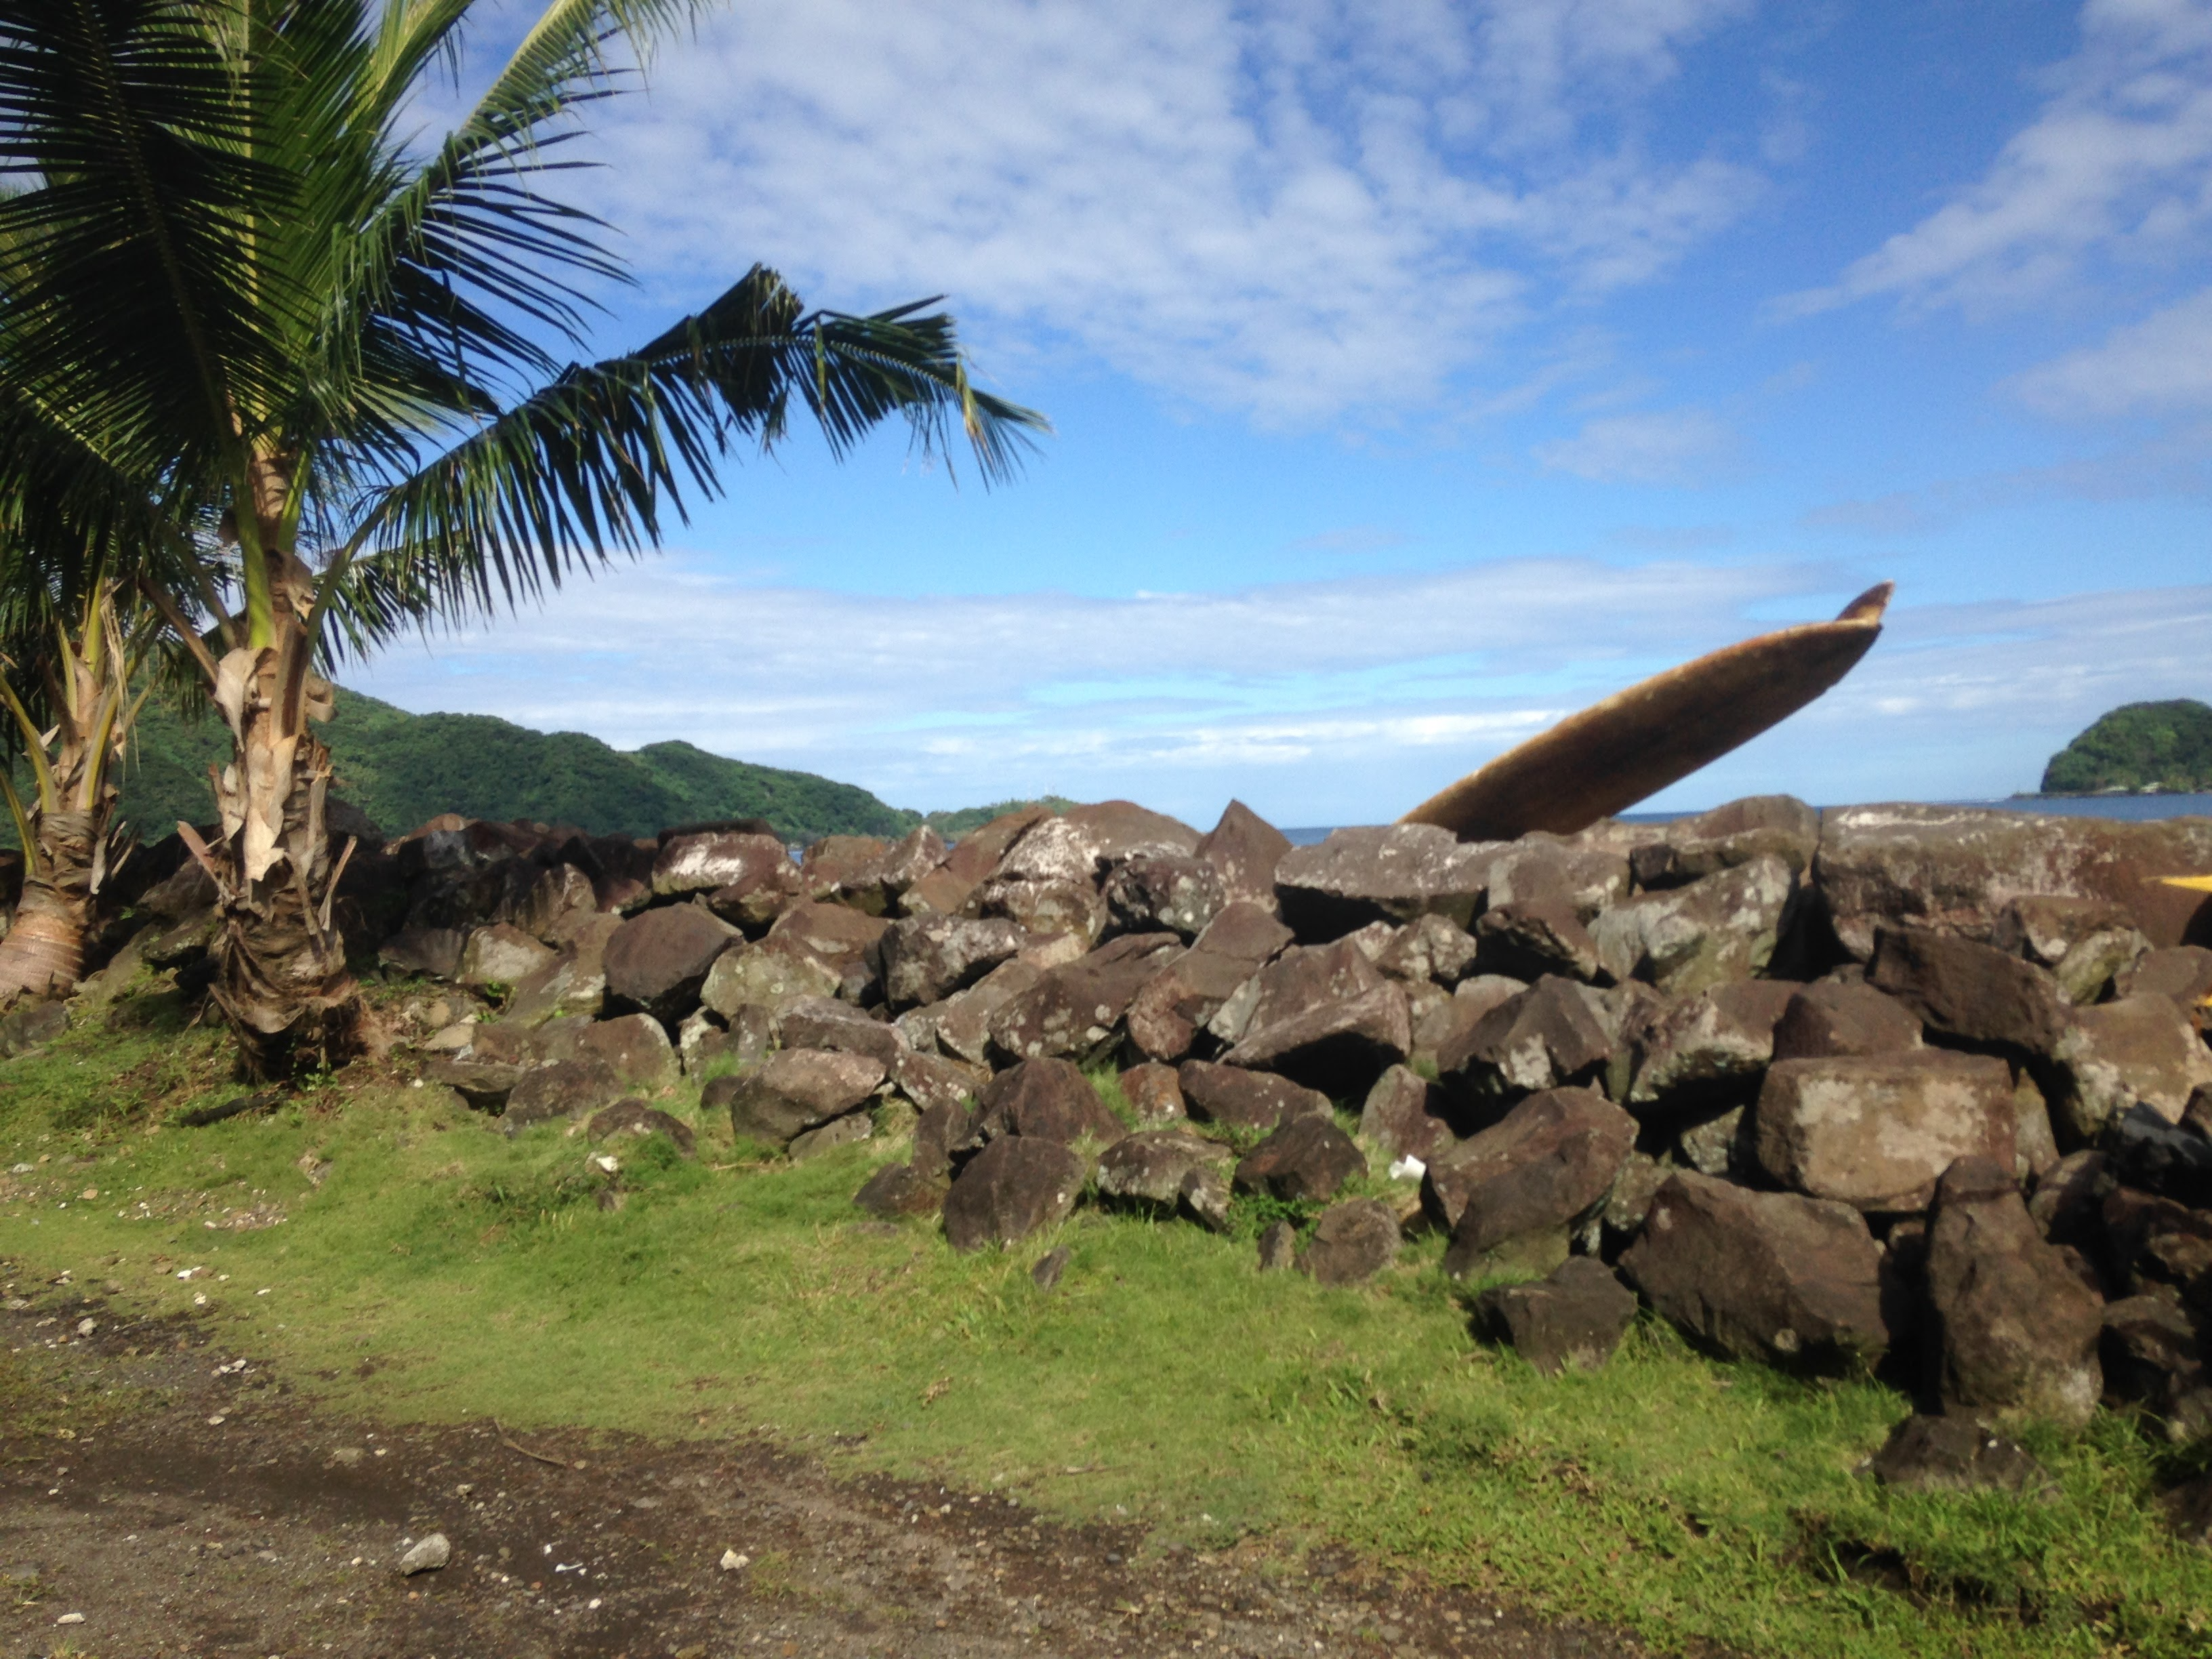 A surf board peeking over a wall near the village of Lauli'i, American Samoa, July 2016.